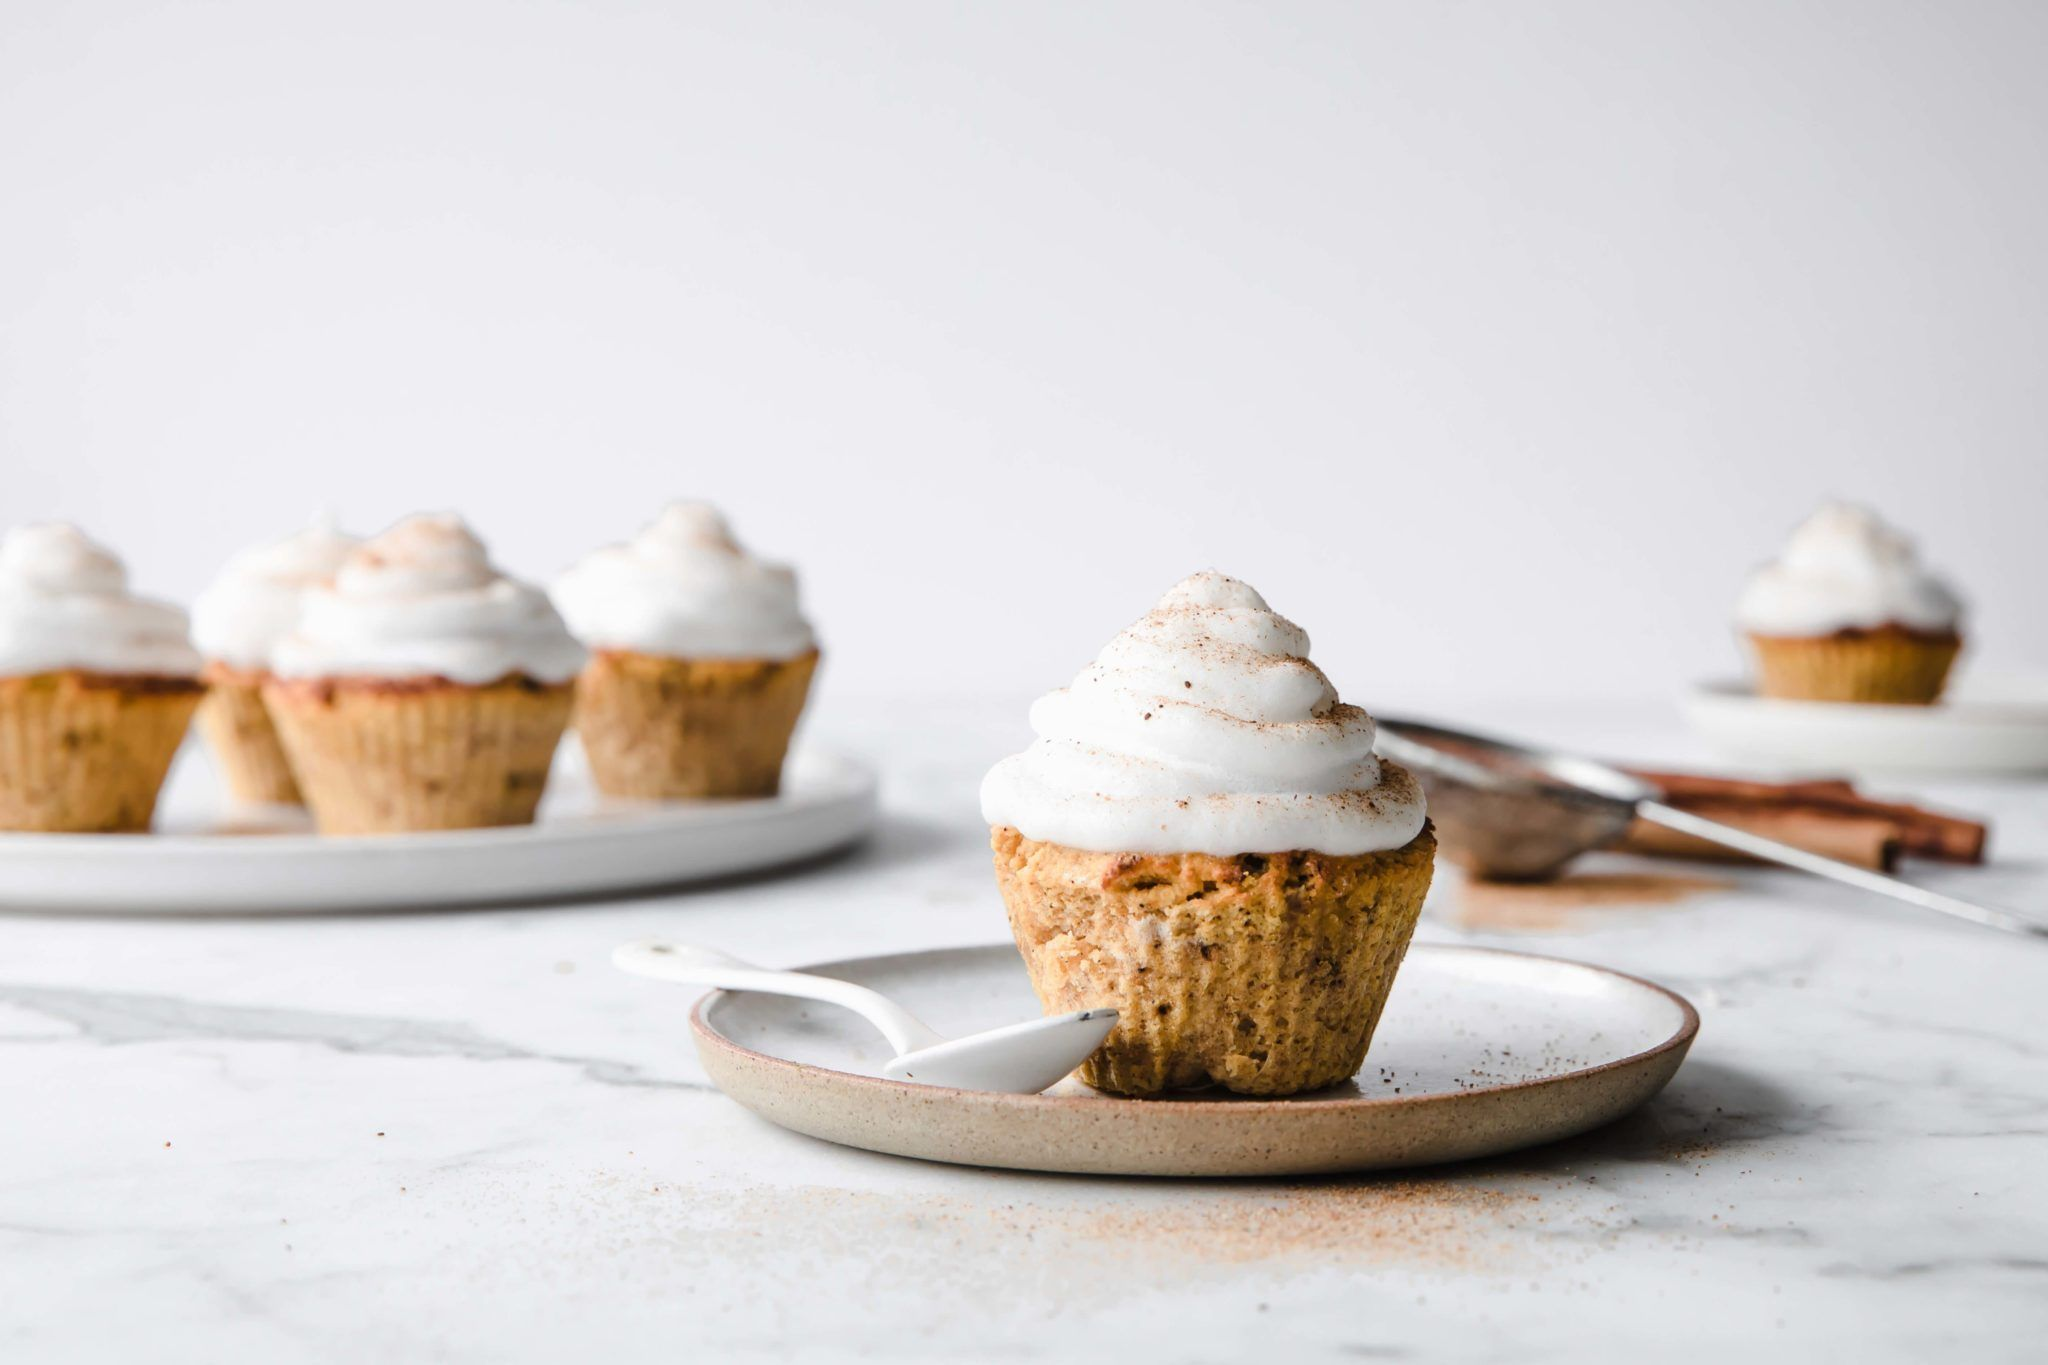 Keto pumpkin spice cupcakes with marshmallow frosting